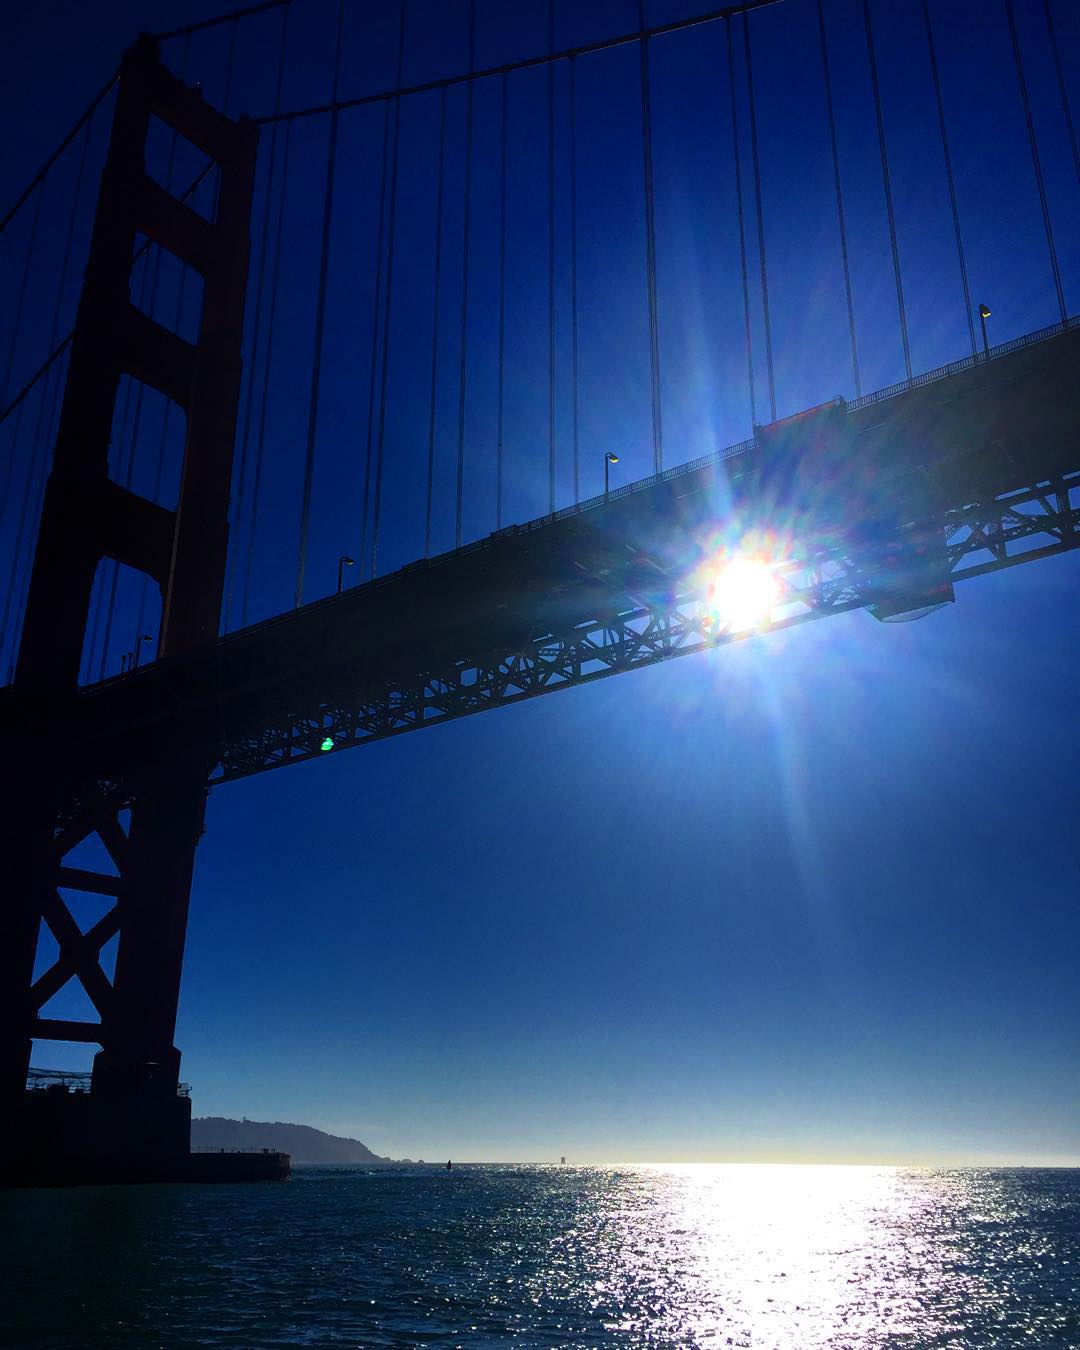 Shine bright like a diamond #goldengatebridge #sanfrancisco #nowrongwaysf #7x7 #alwayssf #wildbayarea